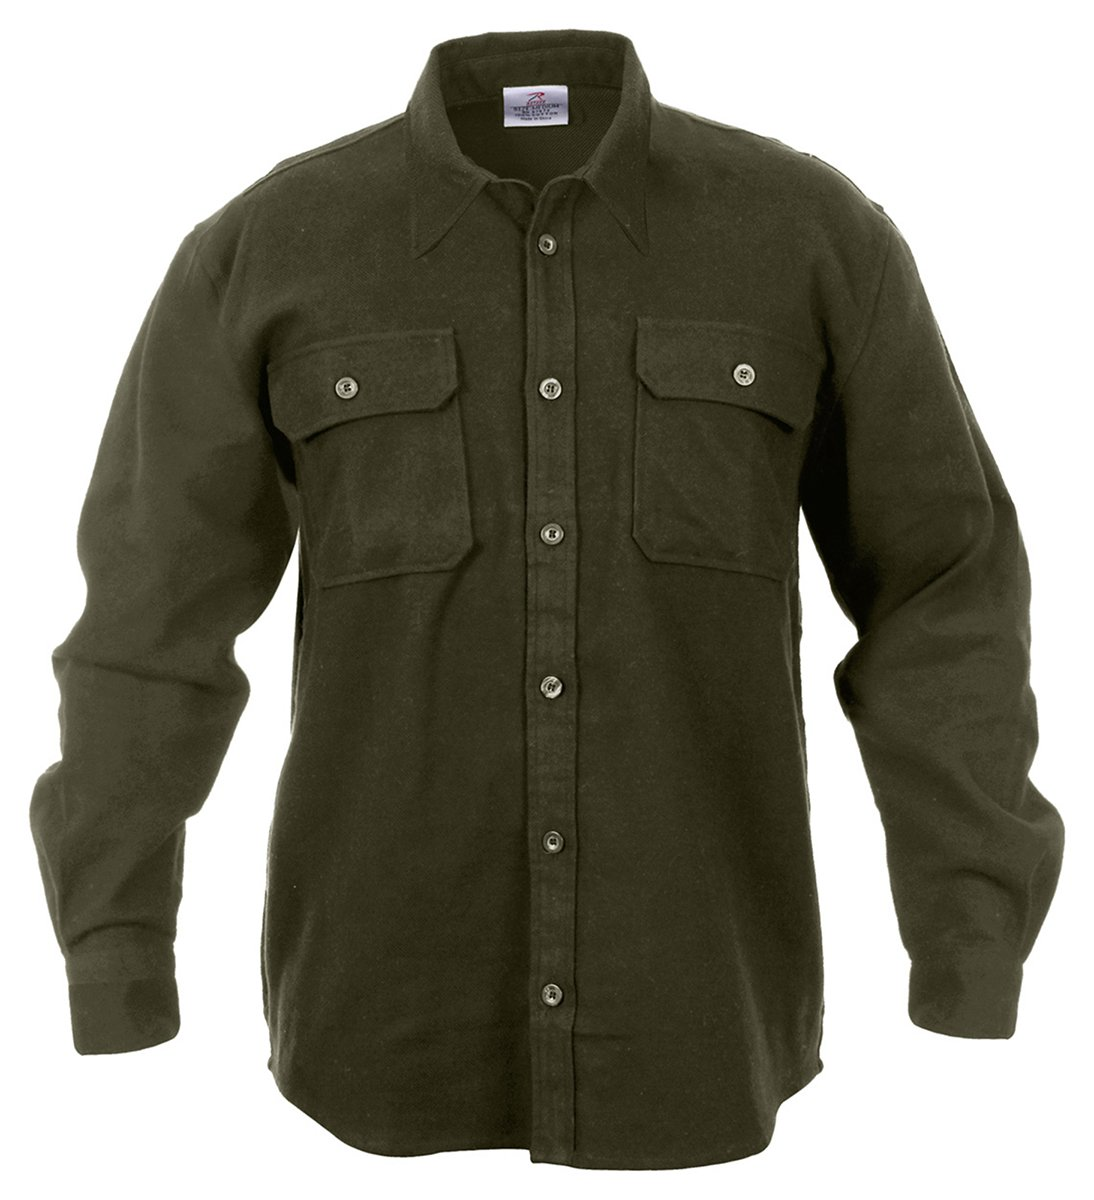 Edwardian Men's Shirts & Sweaters Rothco Heavy Weight Flannel Shirt $43.19 AT vintagedancer.com